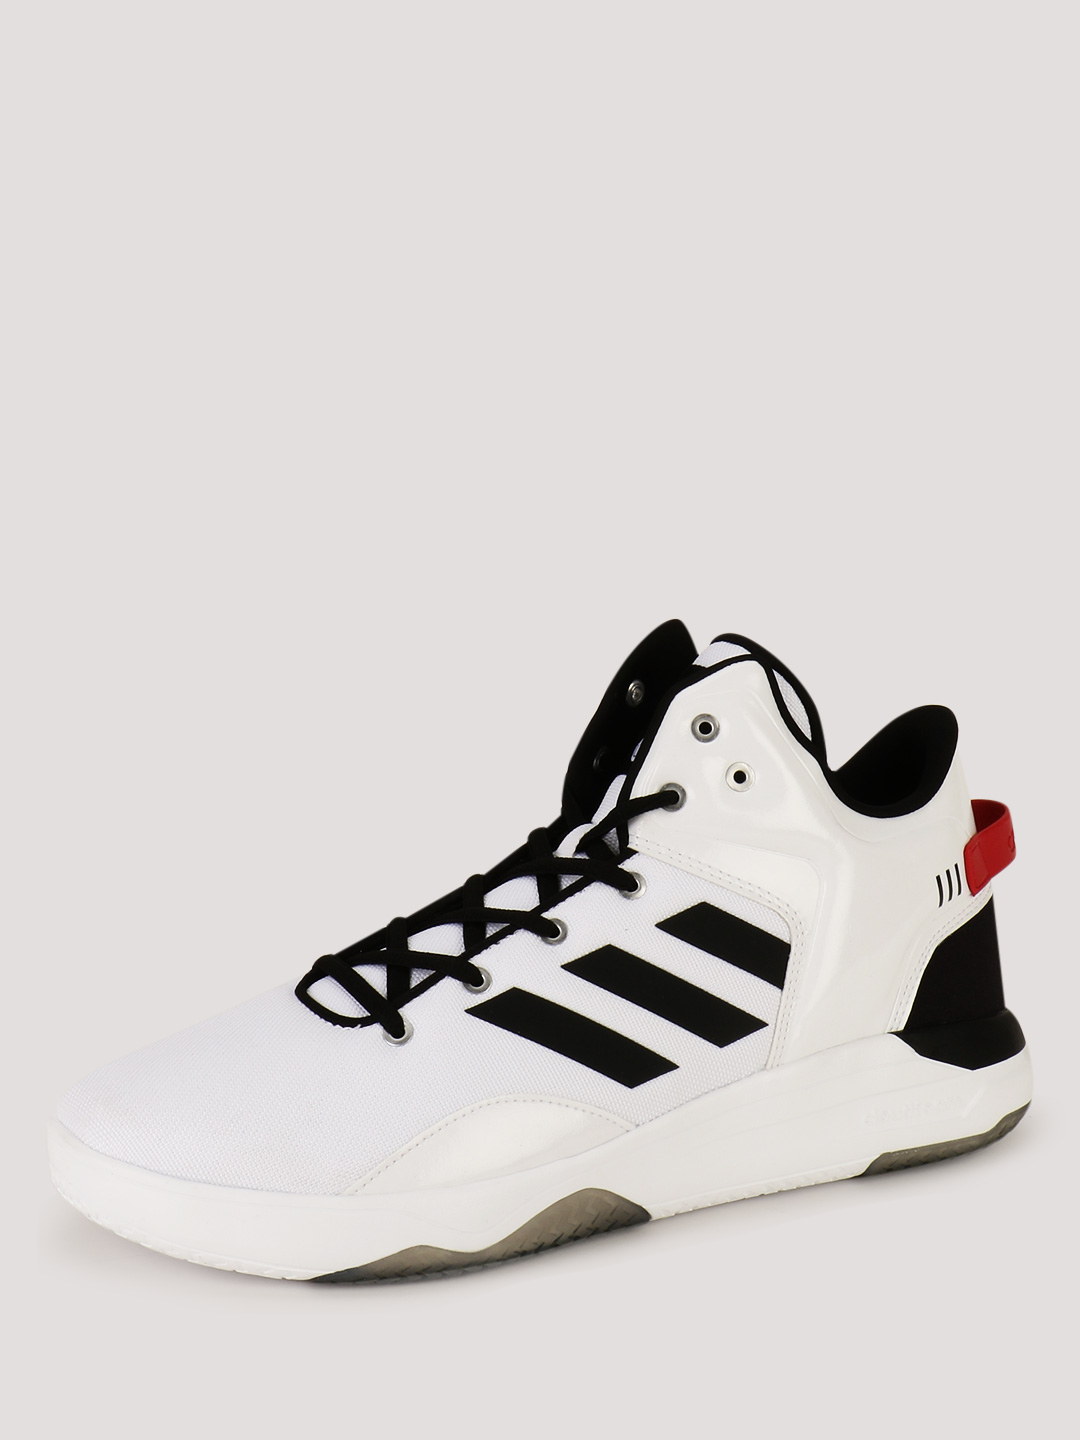 Adidas Neo Revival STAR WARS Mid Top Sneakers with Cloudfoam Technology